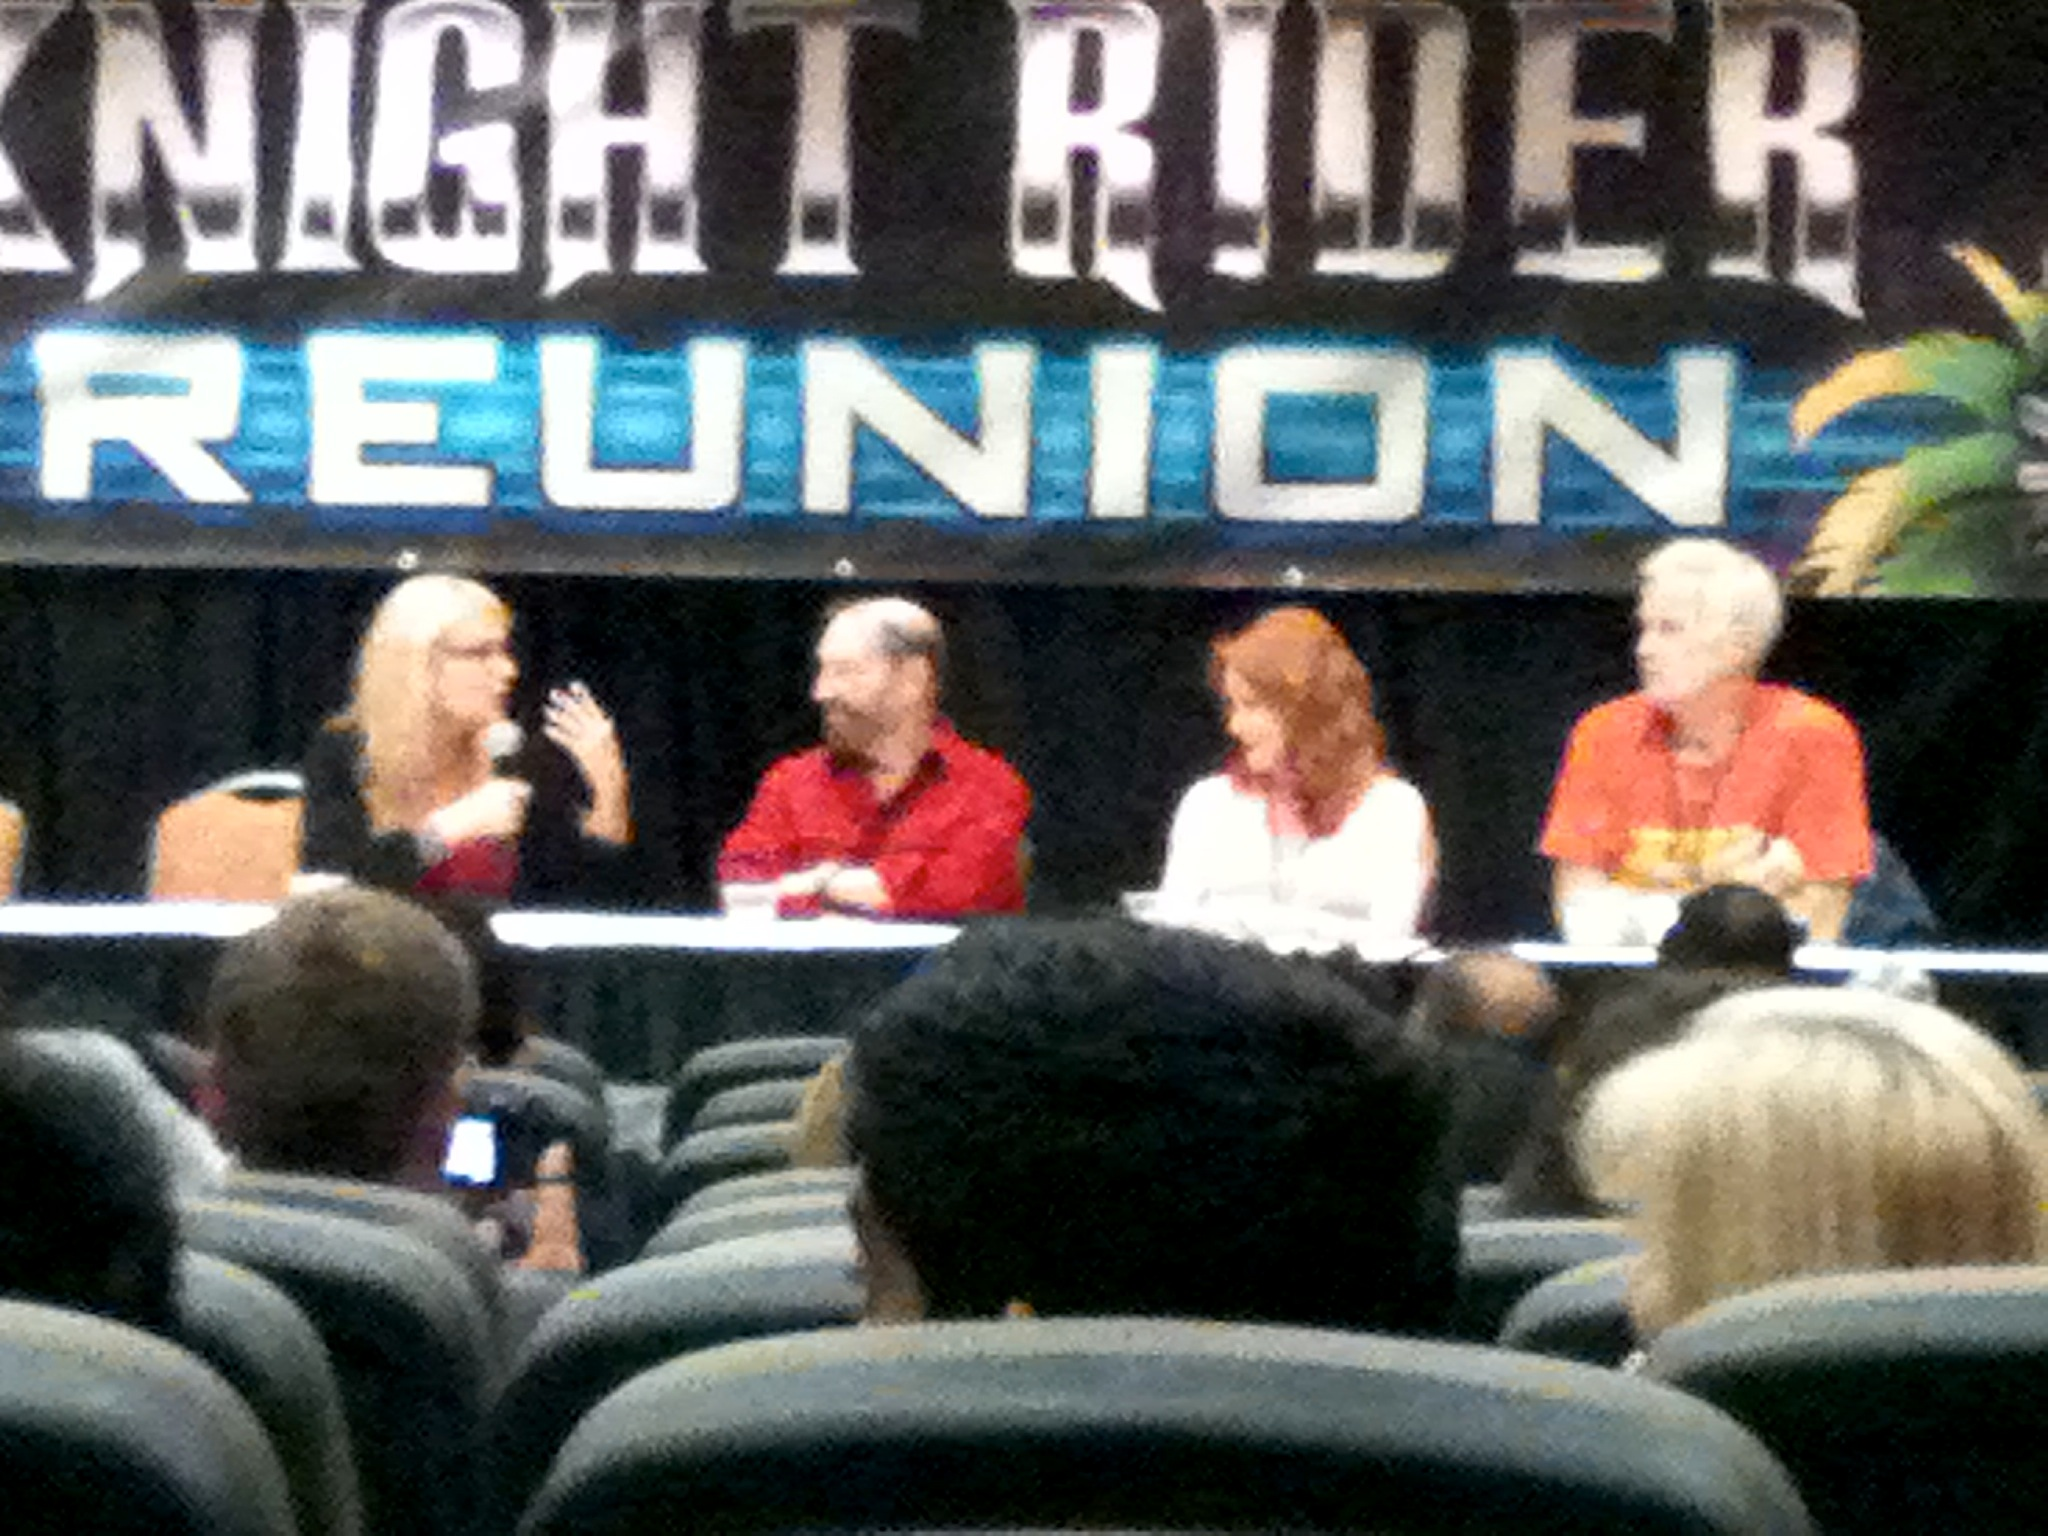 Knight Rider Convention 2012 - With Alan Levi, Jeffrey